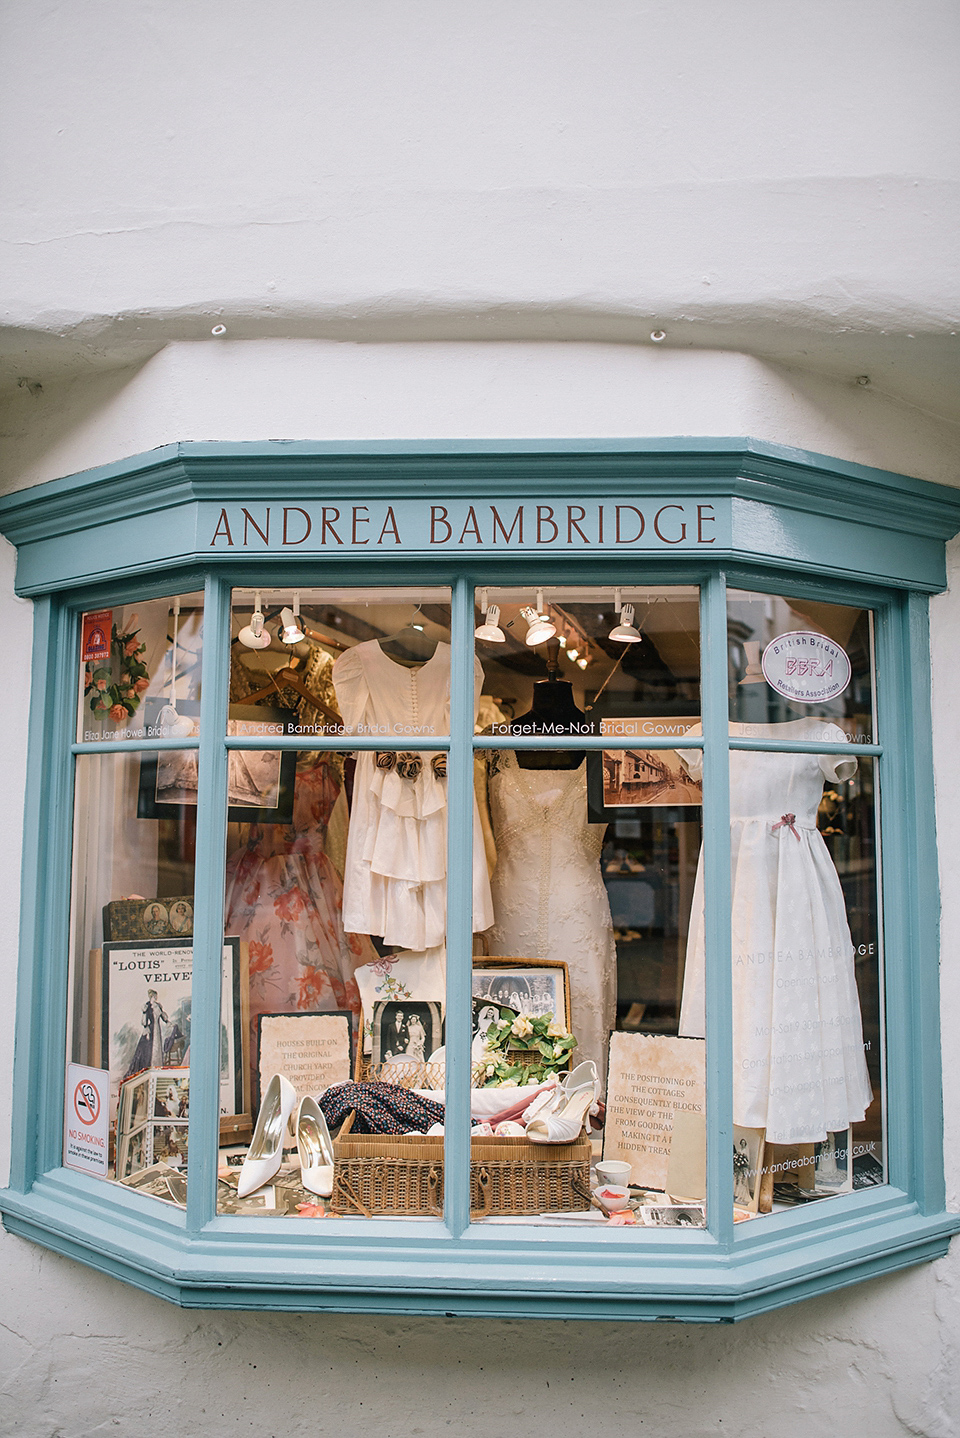 Andrea Bambridge Bridal Boutique of York – Celebrating 700 Years of 'Our Lady's Row'